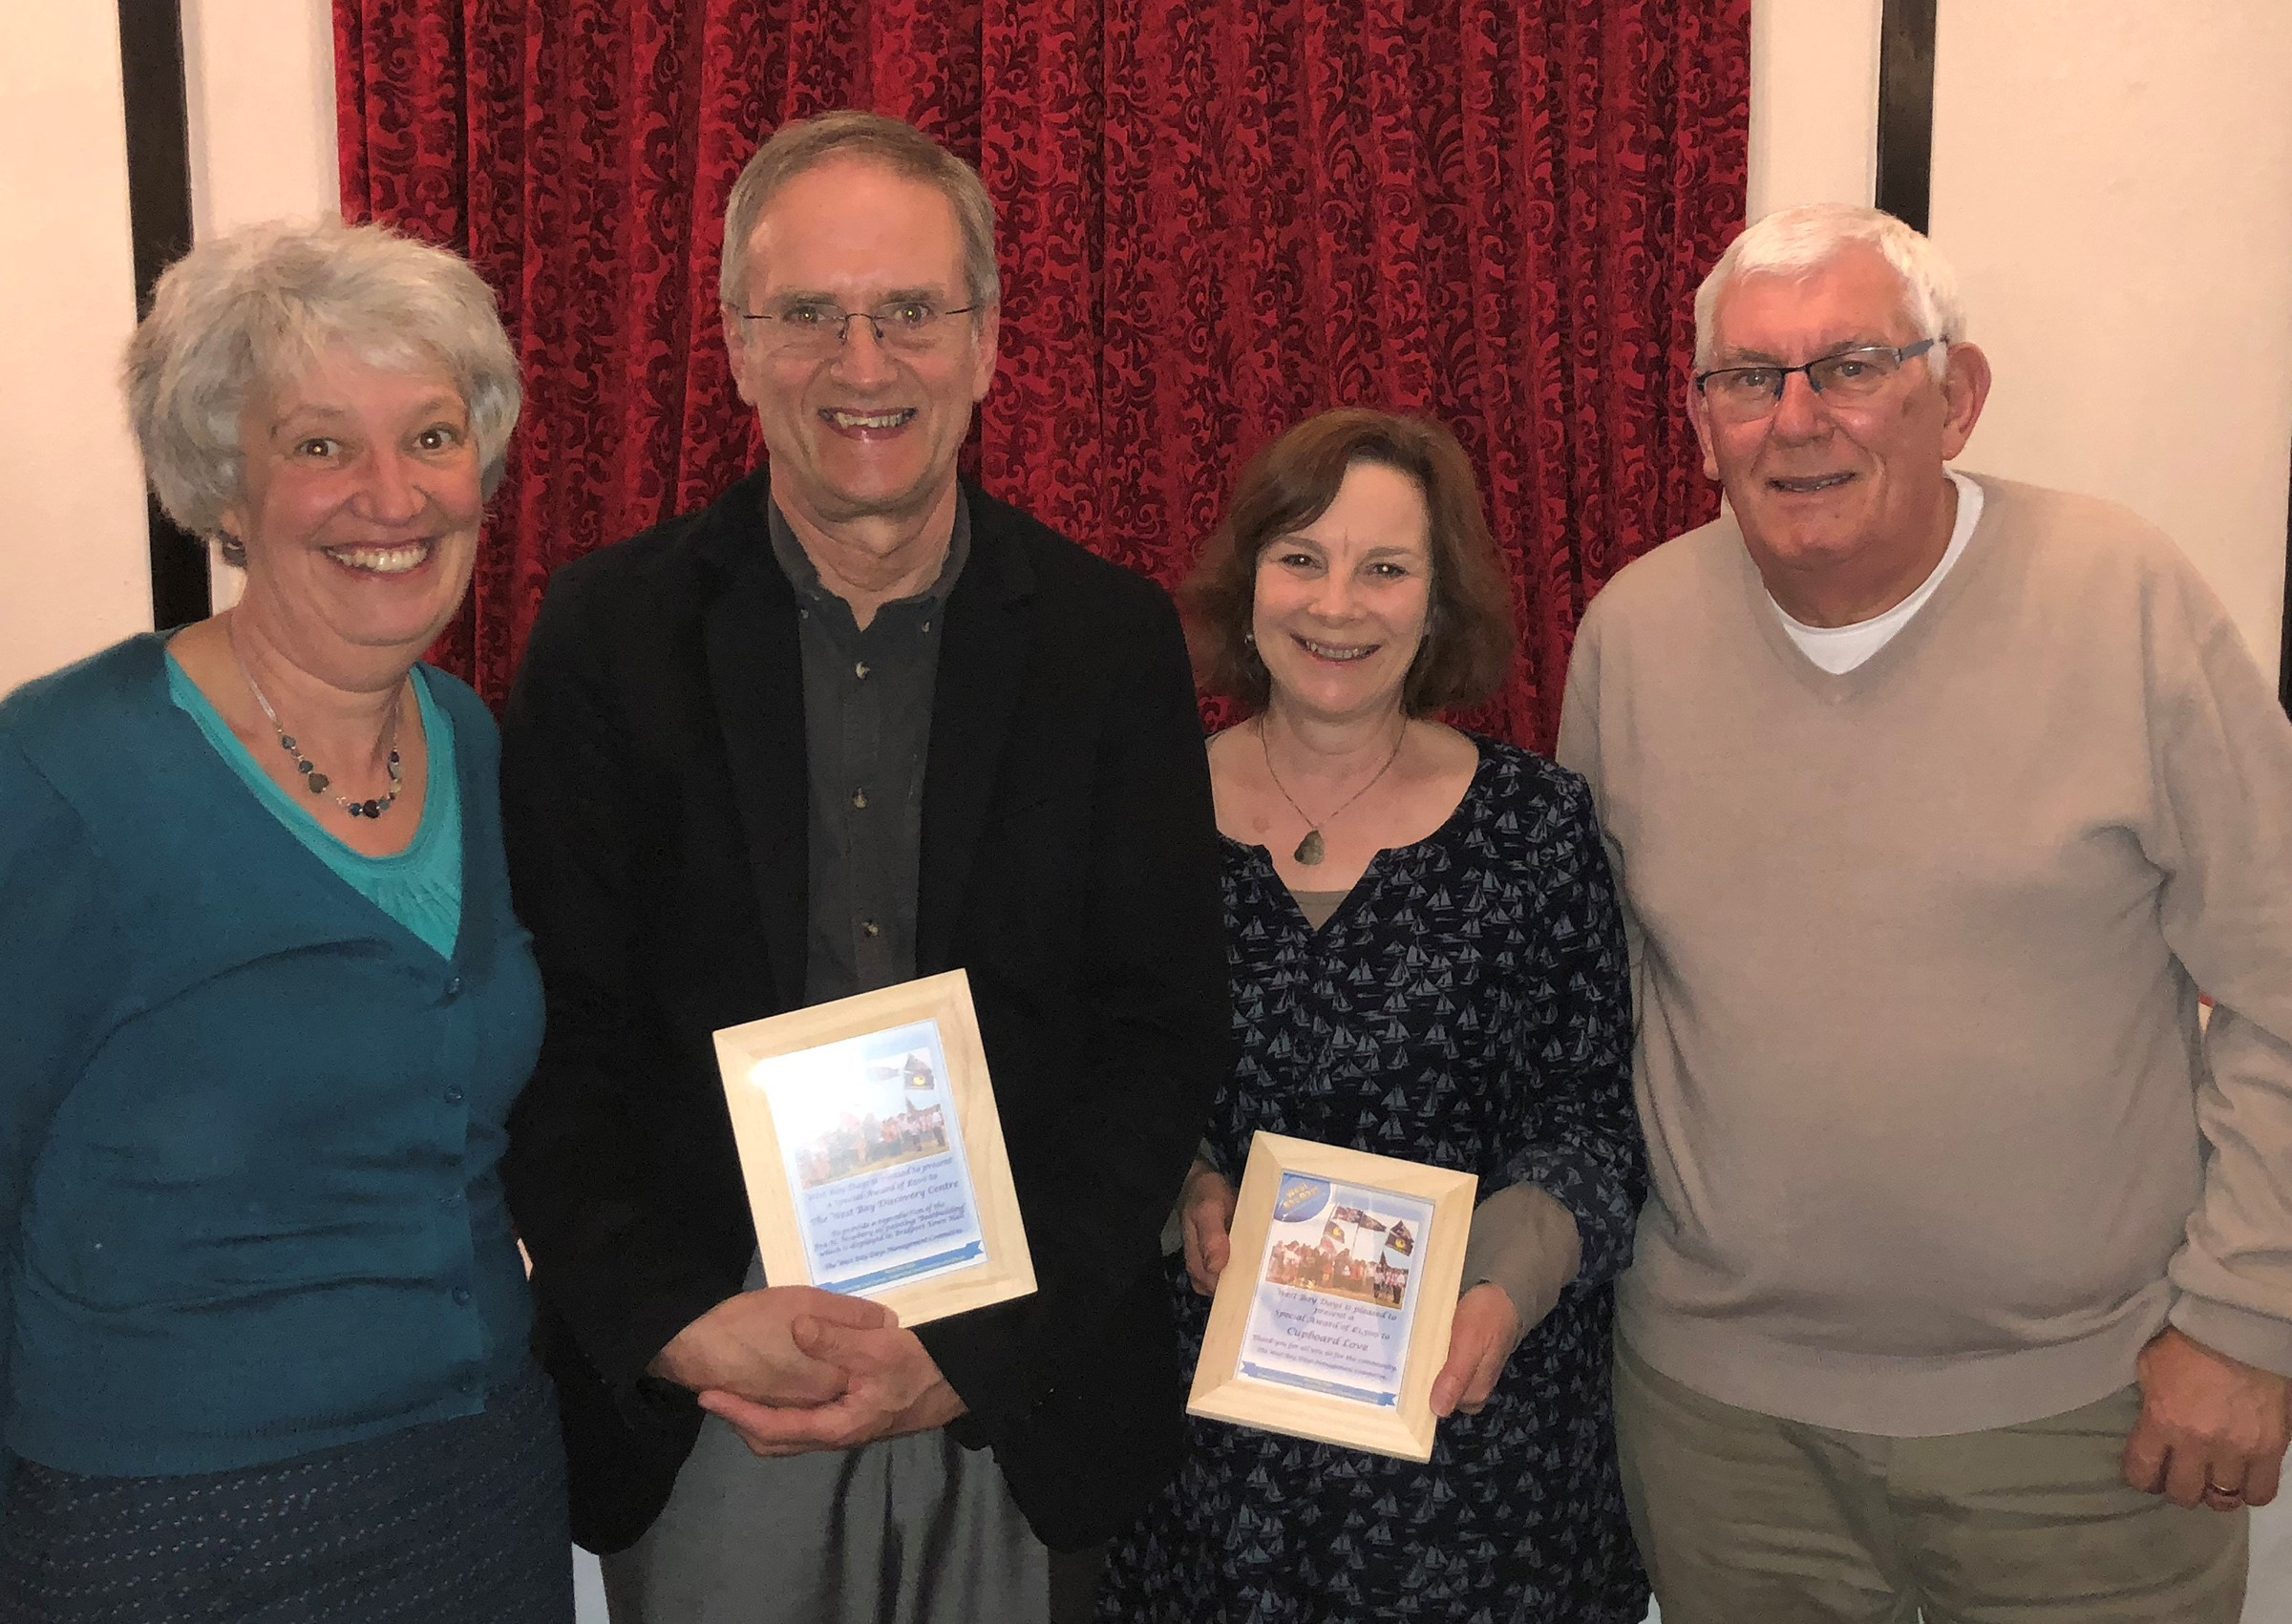 Sarah and John West from West Bay Discovery Centre and Steve Bartlett and Carrie Gamble from Cupboard Love. Picture: Neil Barnes